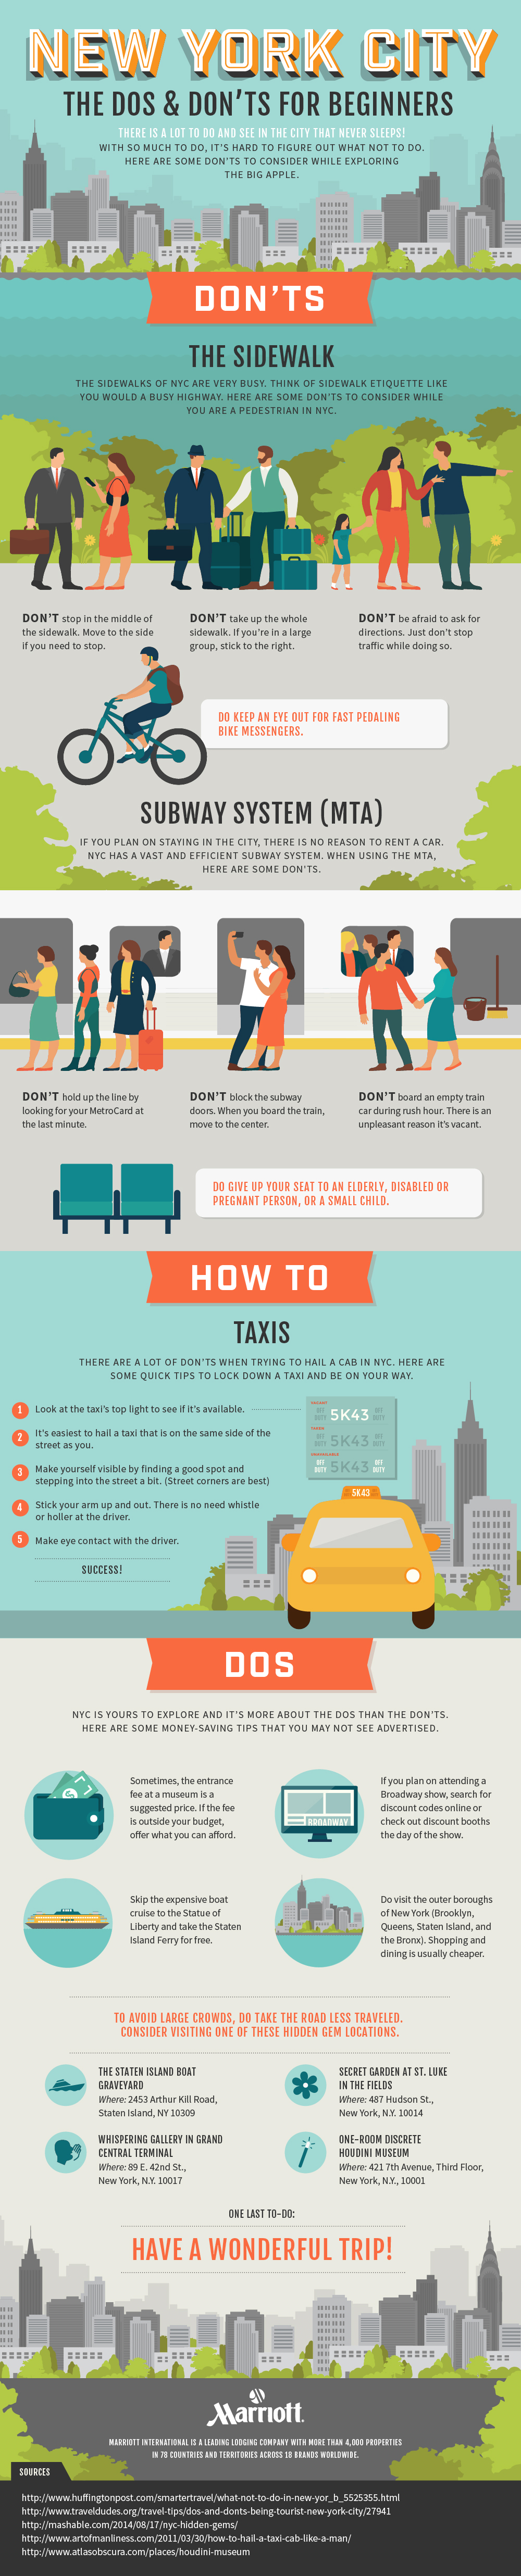 New York City: Dos And Don'ts For Beginners